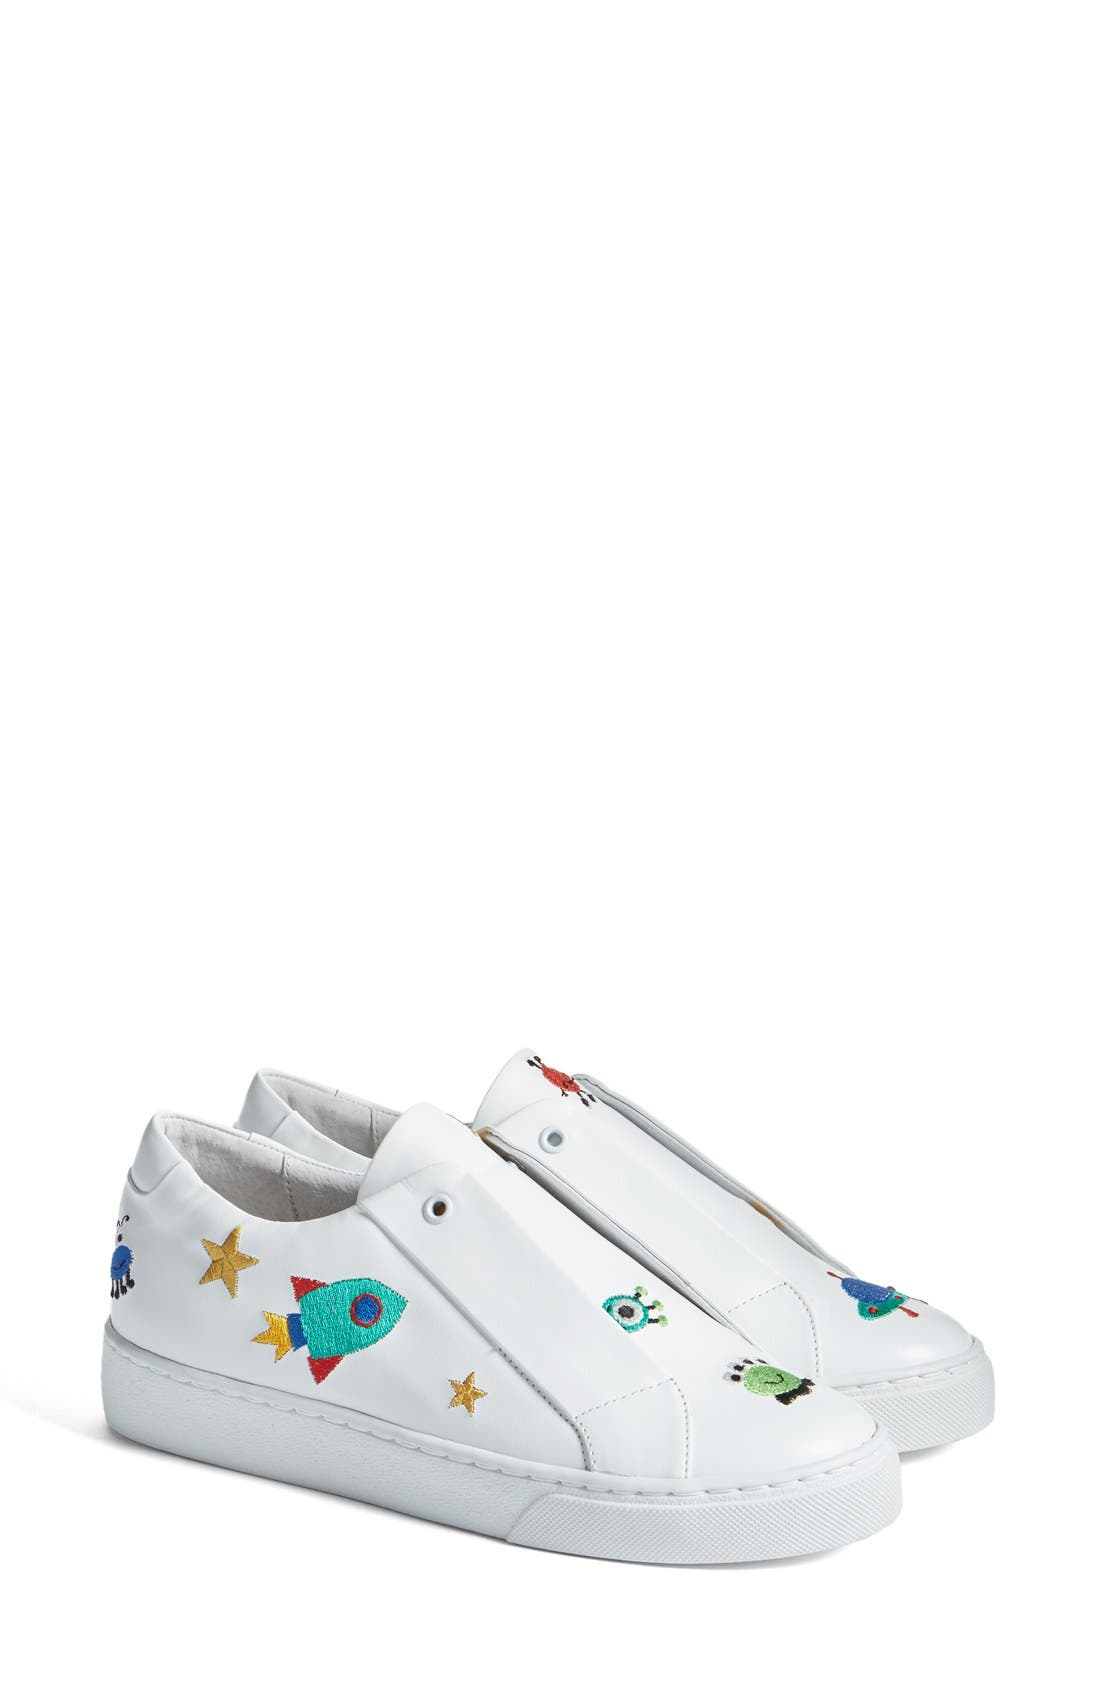 Halley Slip-On Sneaker,                             Main thumbnail 1, color,